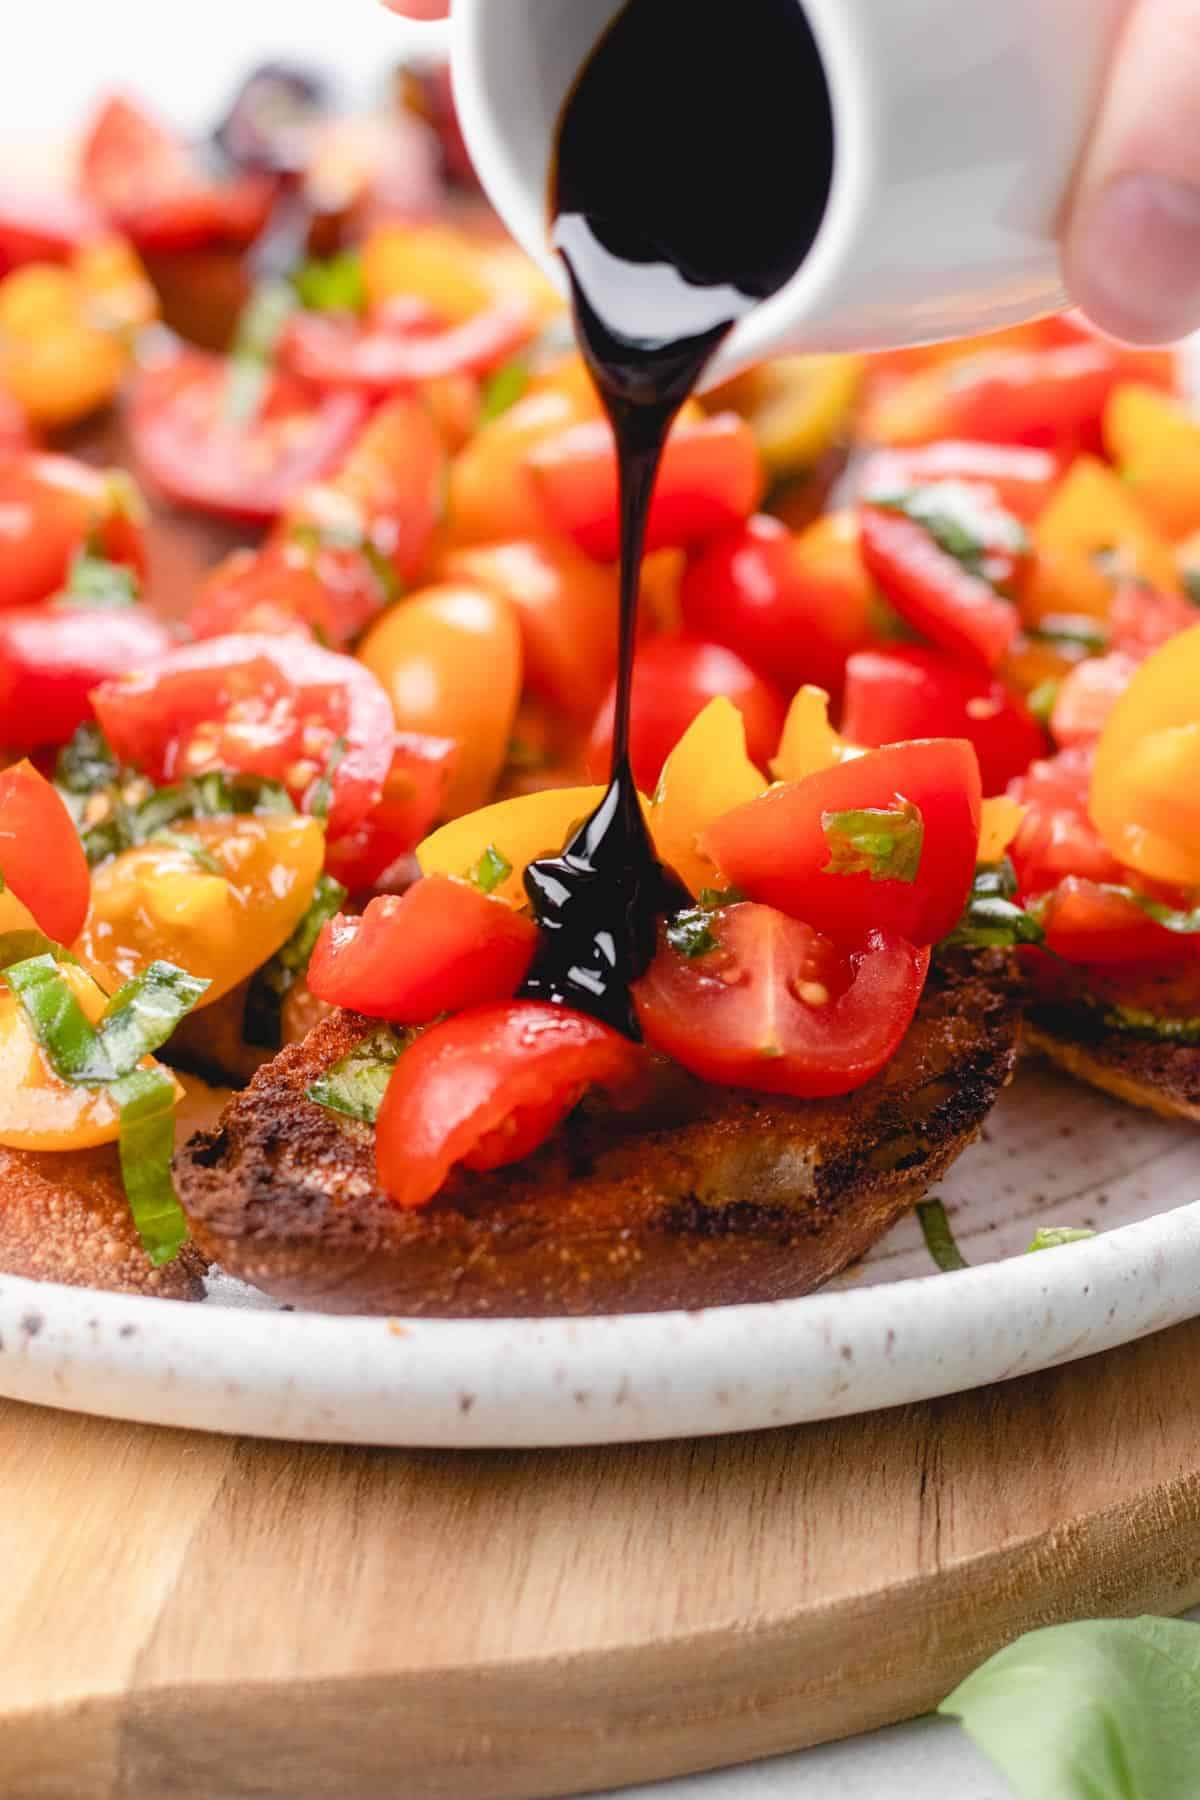 Pouring balsamic glaze on top of bruschetta.